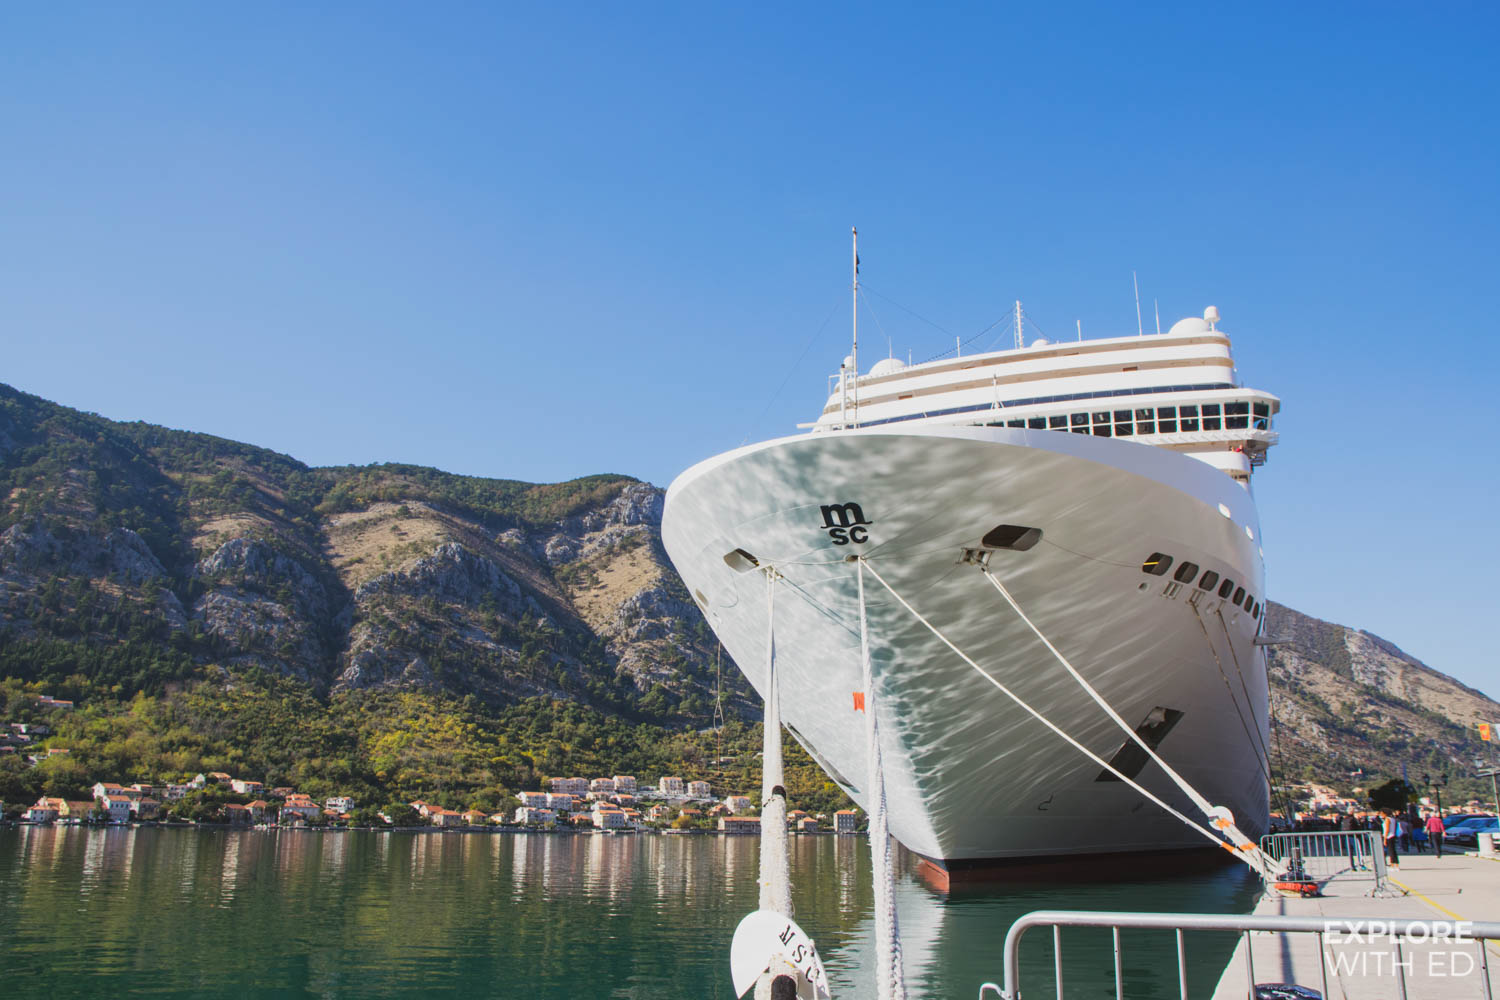 MSC Musica docked in Kotor, Montenegro